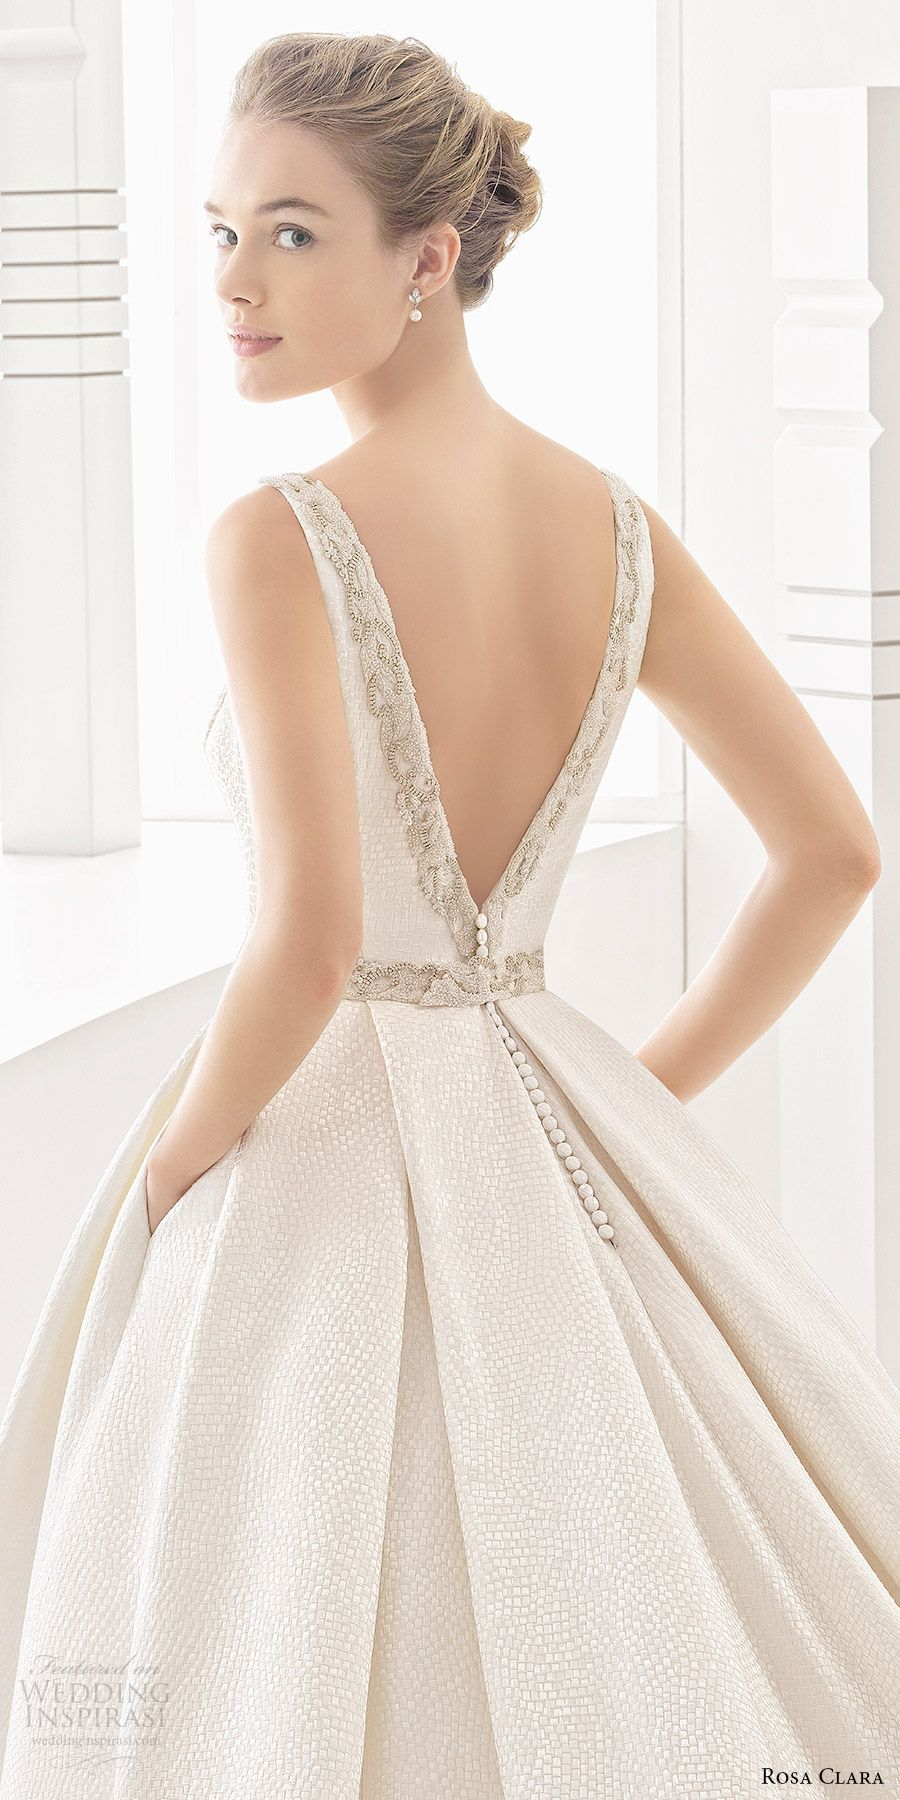 Wedding Dress Trends 2017 — Part 1: The Hottest in Backs, Necklines ...